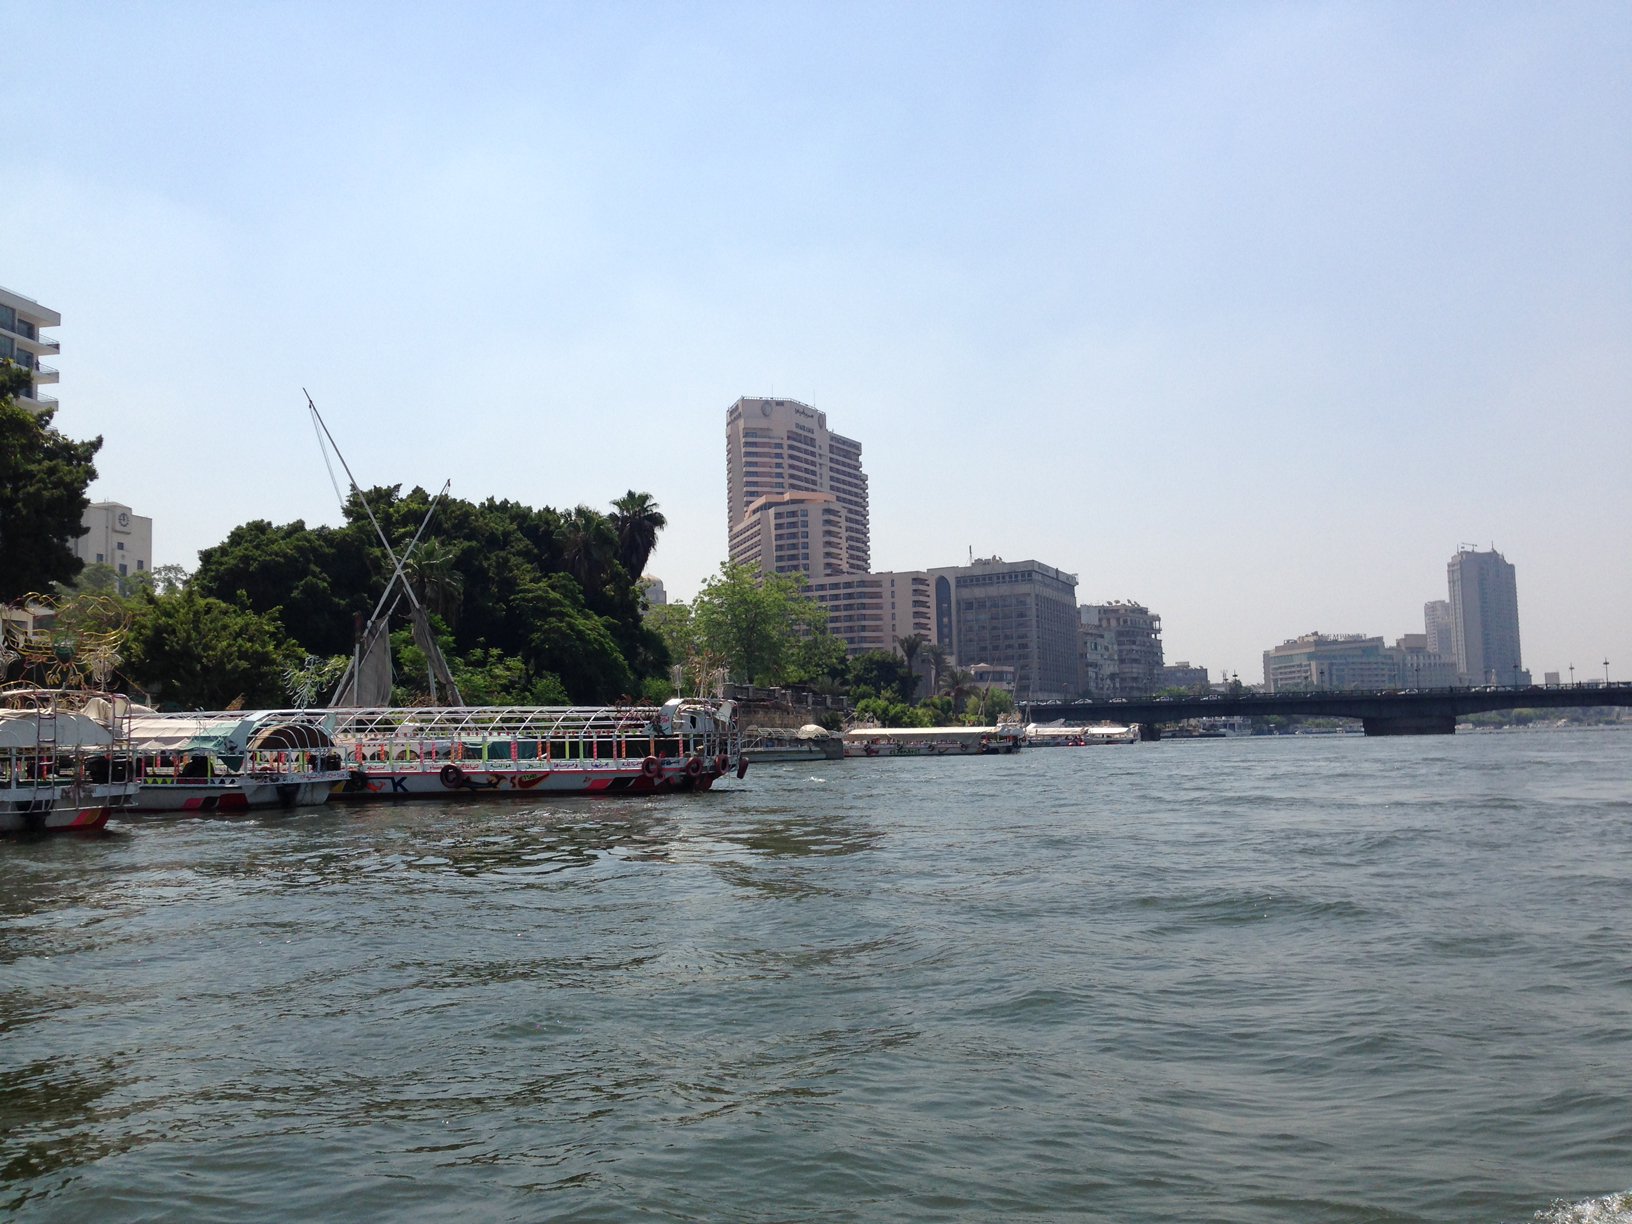 The River Nile in Cairo.